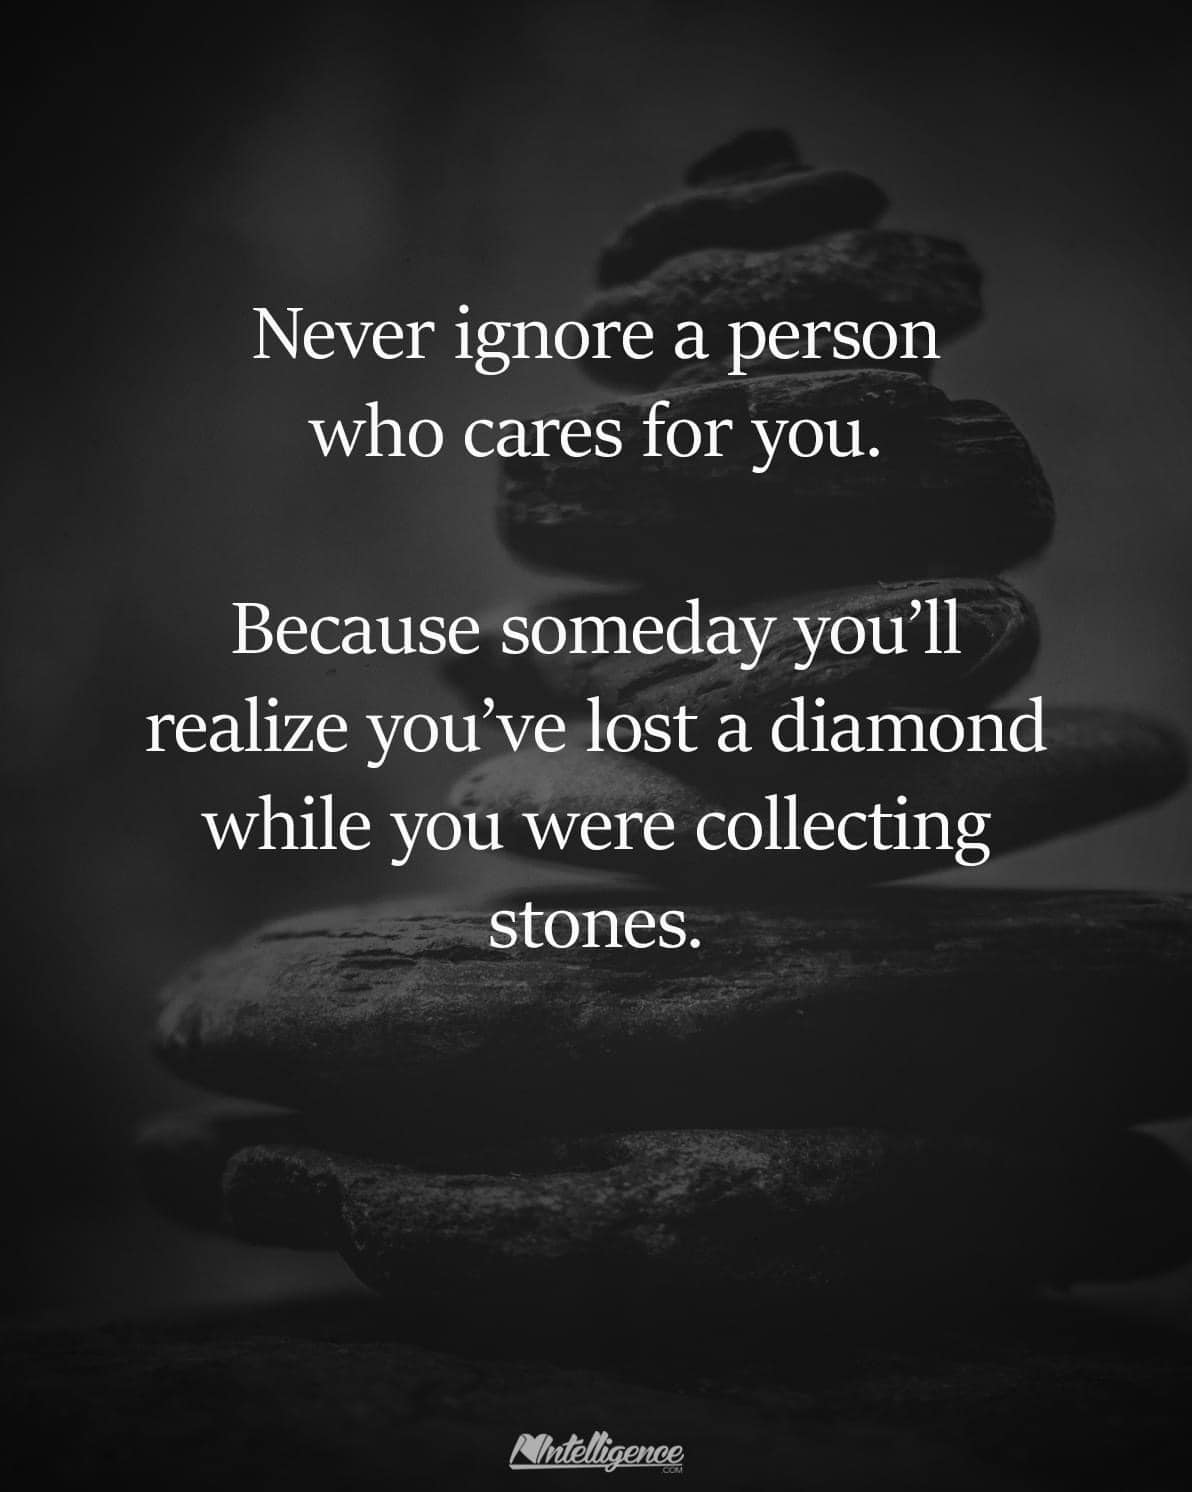 never ignore a person who cares for you, because someday you'll realize you've lost a diamond while you were collecting stones